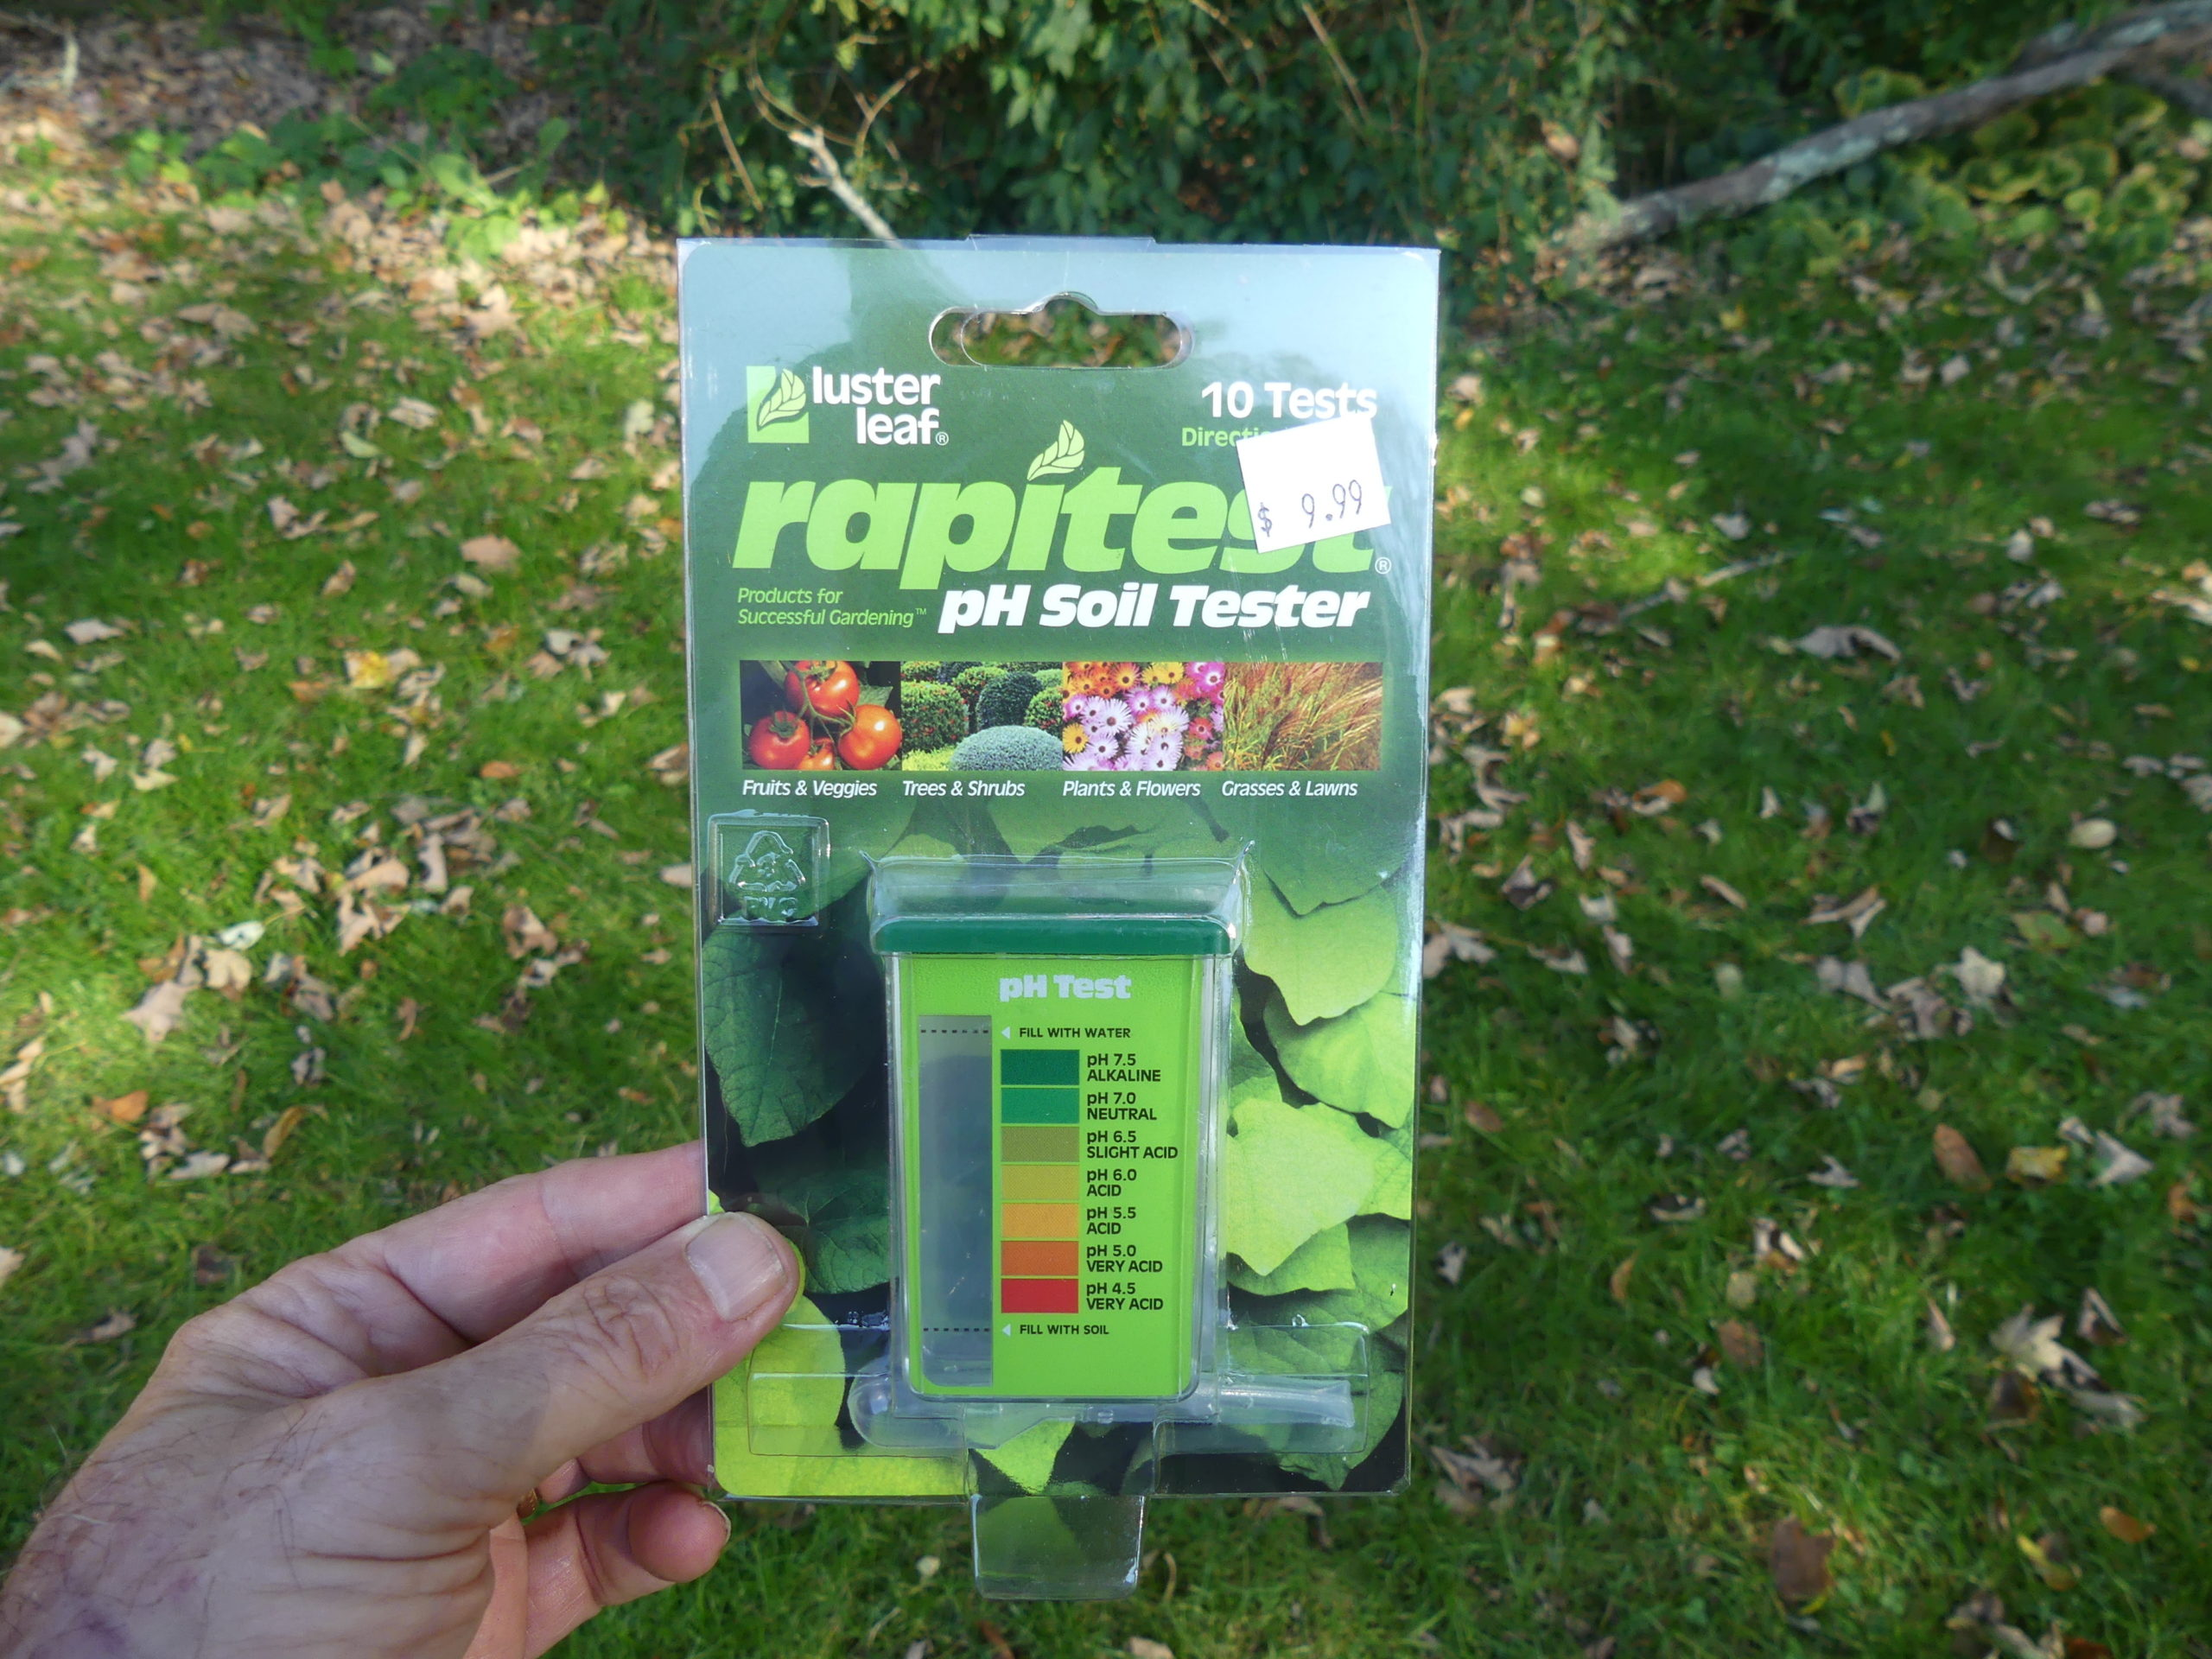 This is the perfect time to test your soil pH. Inexpensive kits like this one cost about $10 for ten tests. Remember to test several spots in your lawn, your vegetable garden and your landscape beds. ANDREW MESSINGER